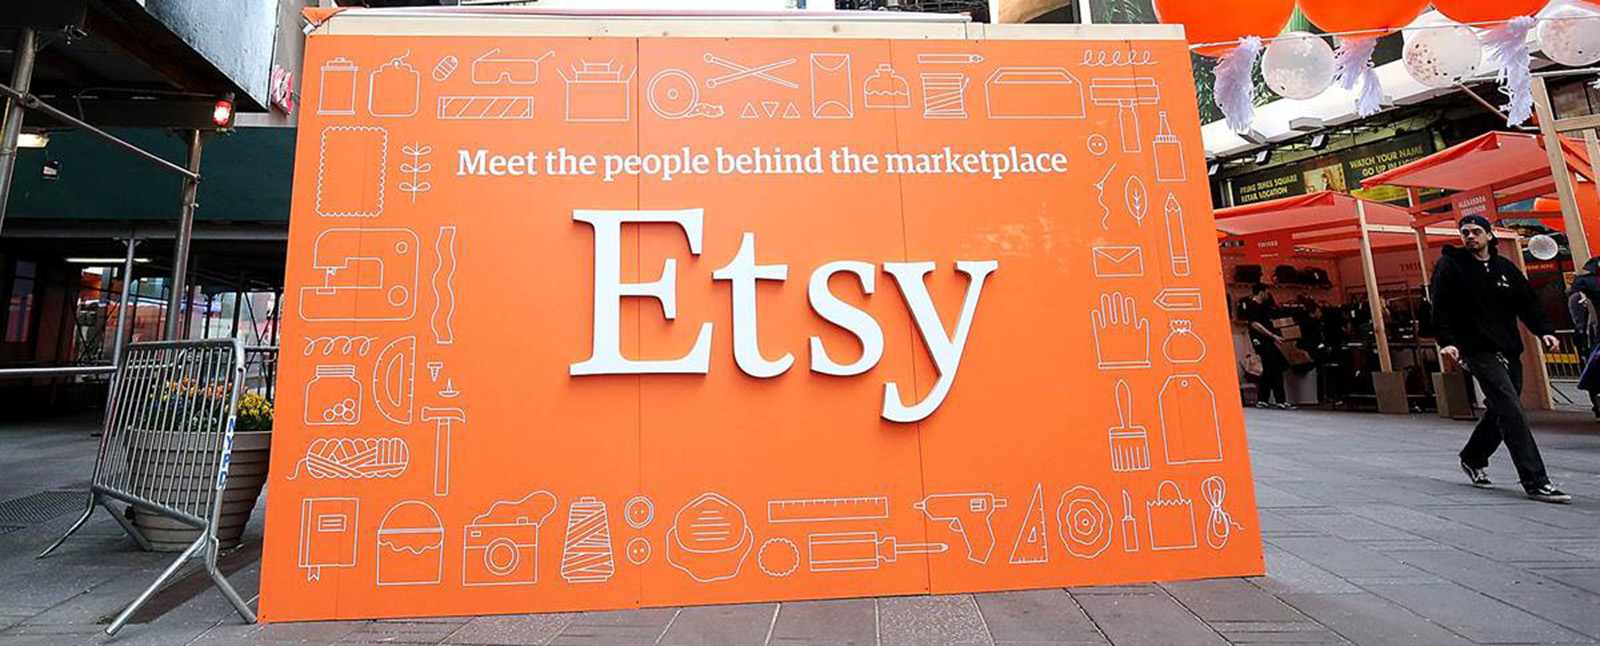 Is Etsy the New Silk Road for Copyright Infringement?